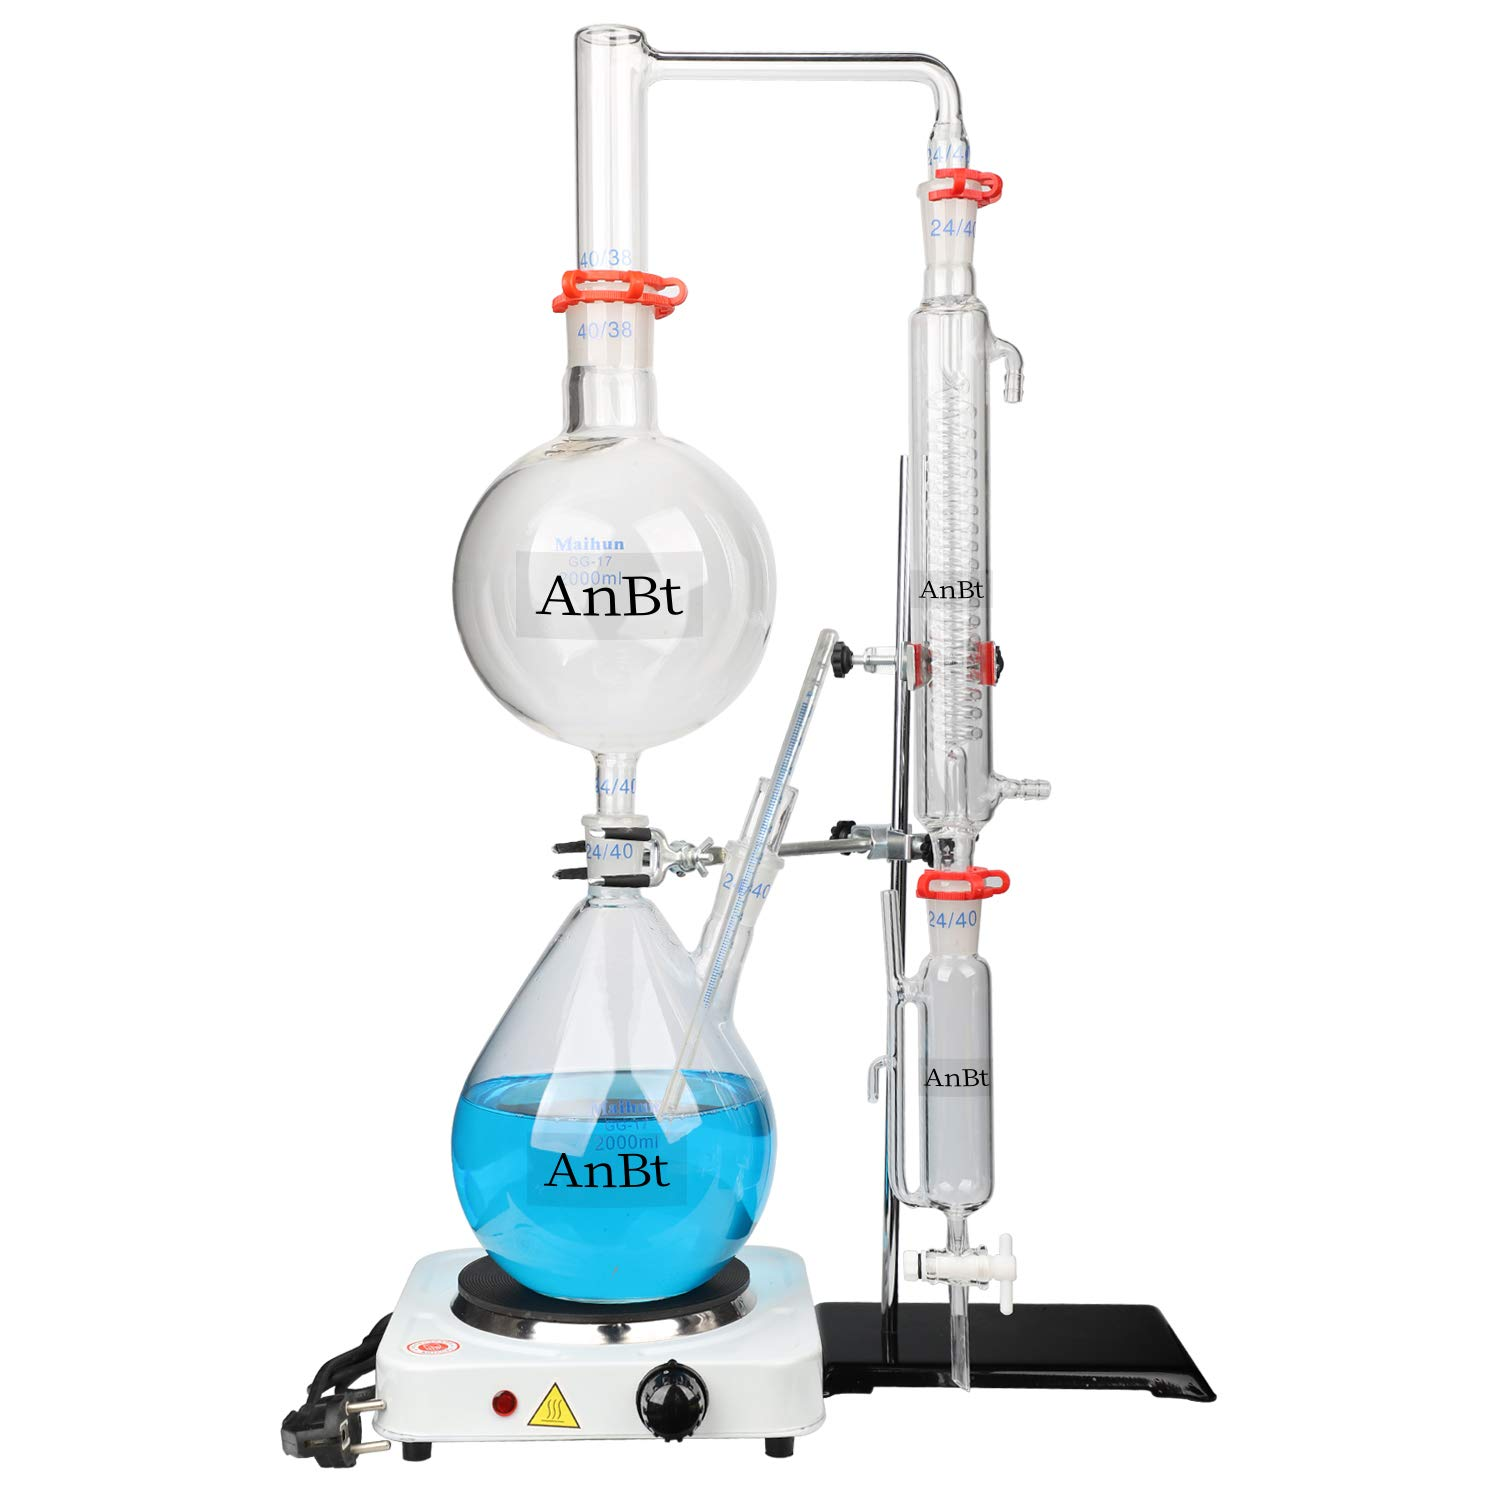 AnBt 2L Lab Essential Oil Distillation Kit Water Distiller Purifier DIY Home Essentials Chemistry Set with Hot Stove Condenser S35 & 24 or 40 Joint